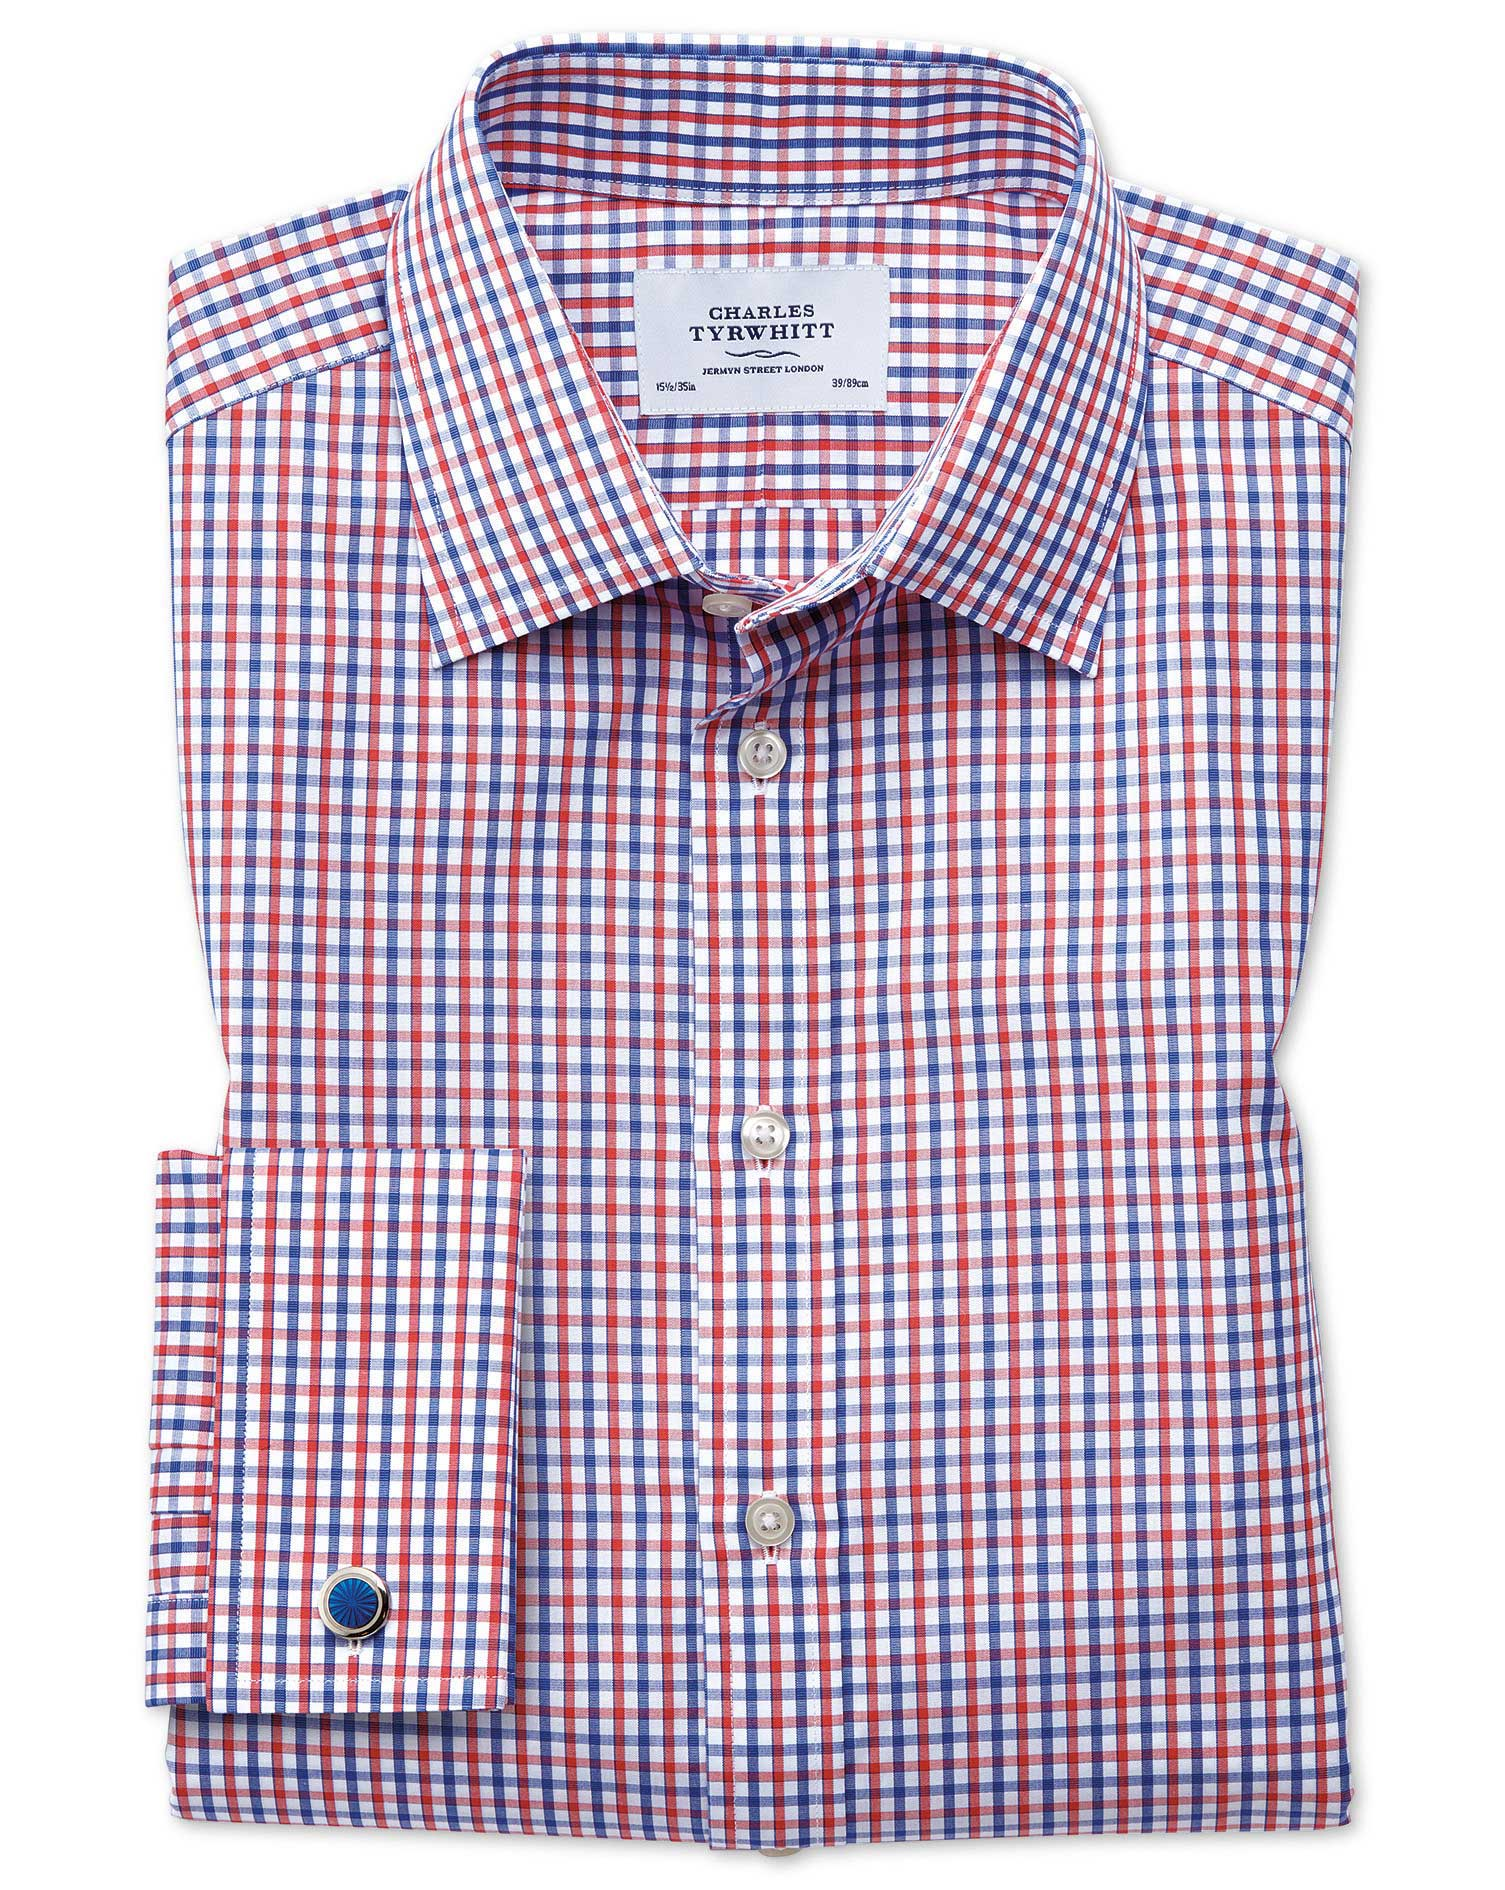 Extra Slim Fit Two Colour Check Red and Blue Cotton Formal Shirt Double Cuff Size 15/35 by Charles T